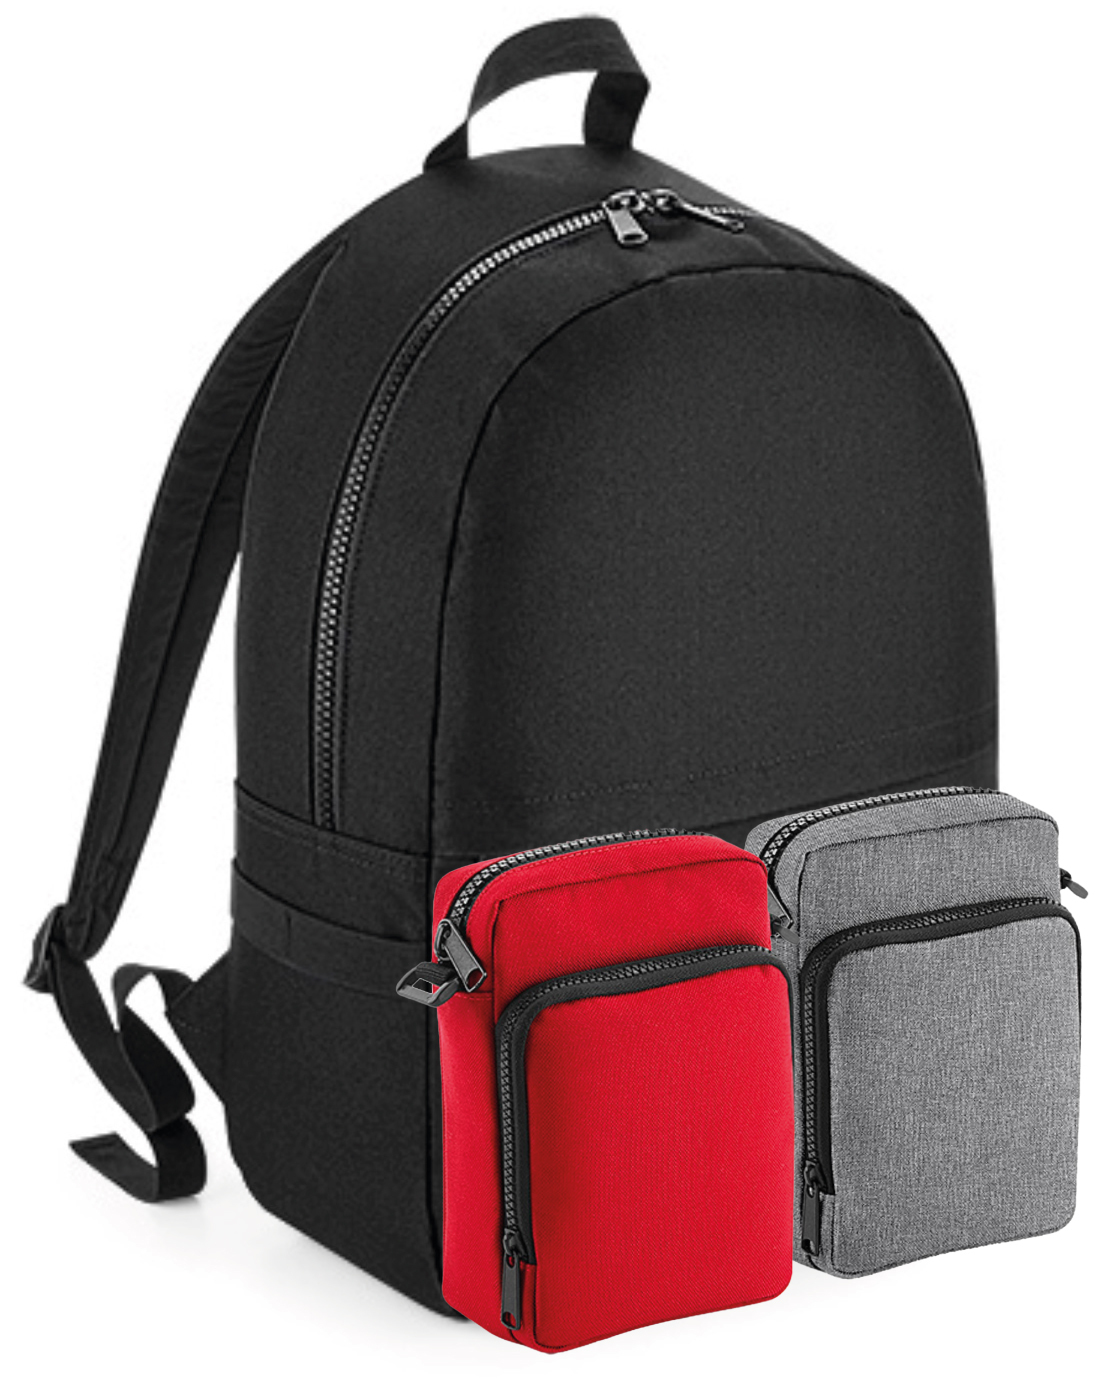 5130_BG240_Modulr_20-Litre-Backpack_Black_red_grey_002